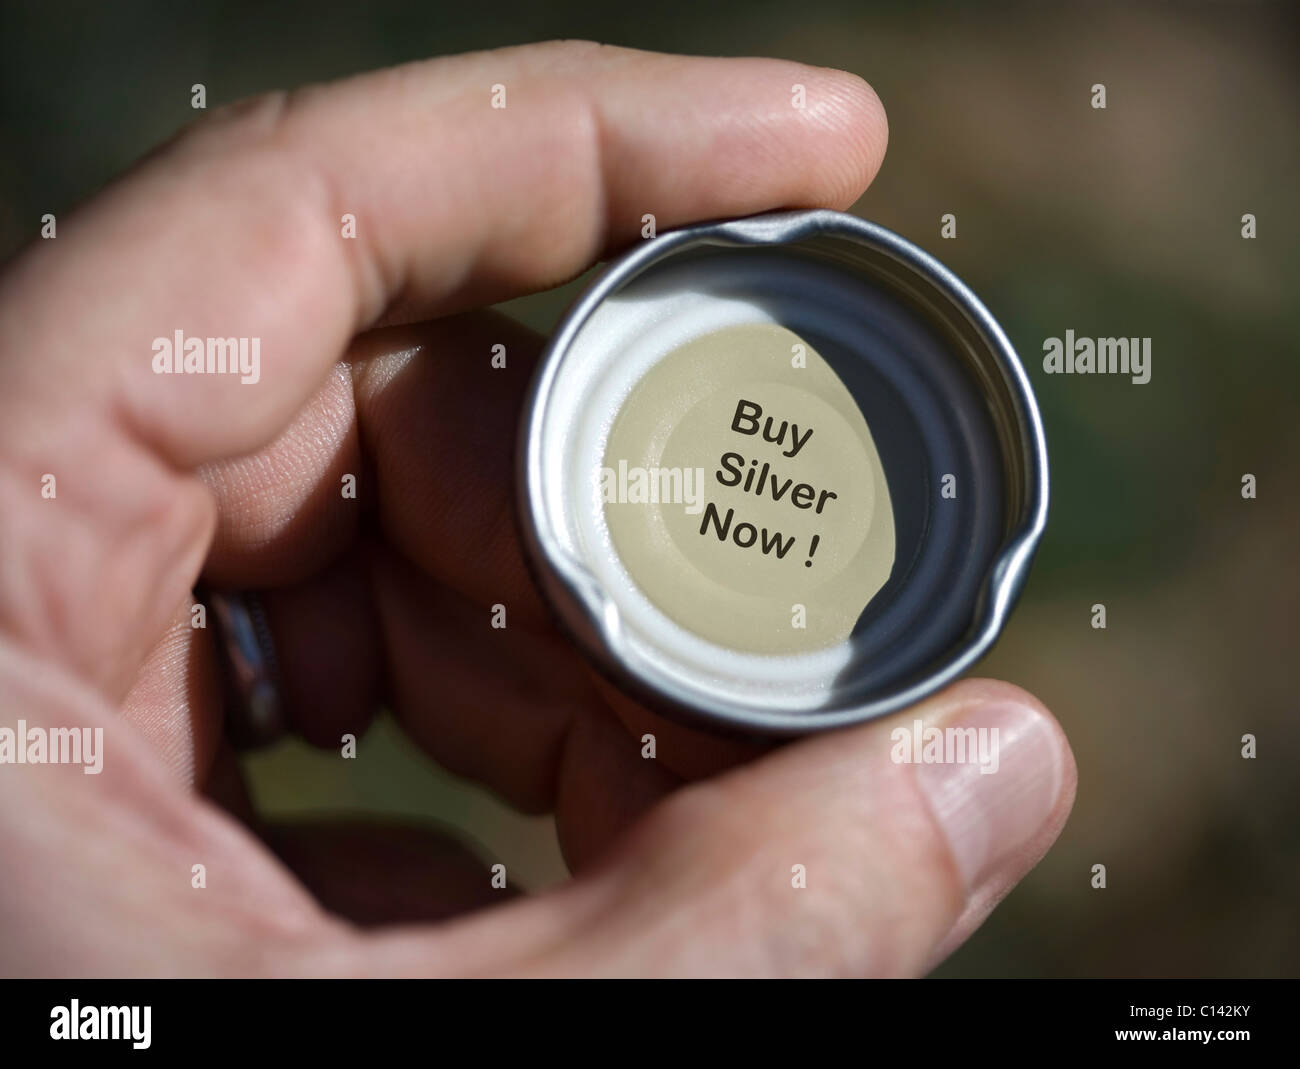 Inside of a bottle cap with message to buy silver now. - Stock Image